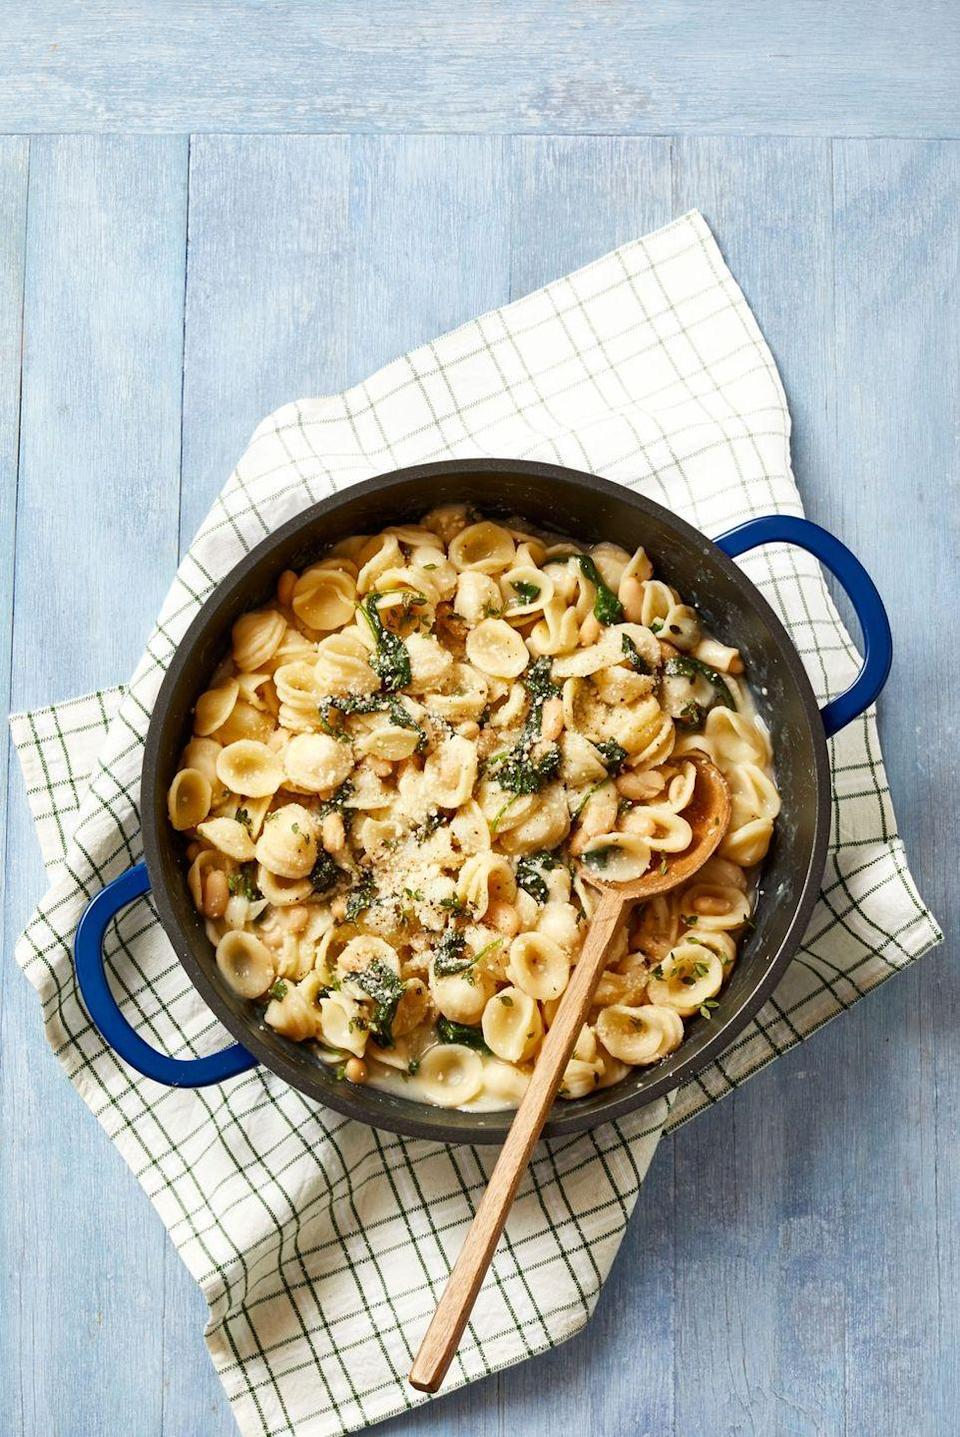 "<p>Studies show that a plant-based diet can lower your risk of heart disease and help you live longer. And it's better for the planet too. ""Start with just one day,"" suggests nutritionist Shanon Whittingham. Try meatless meals you already love, like oatmeal, veggie-topped pasta, teriyaki-grilled tofu or an acai bowl loaded with fruit. </p>"